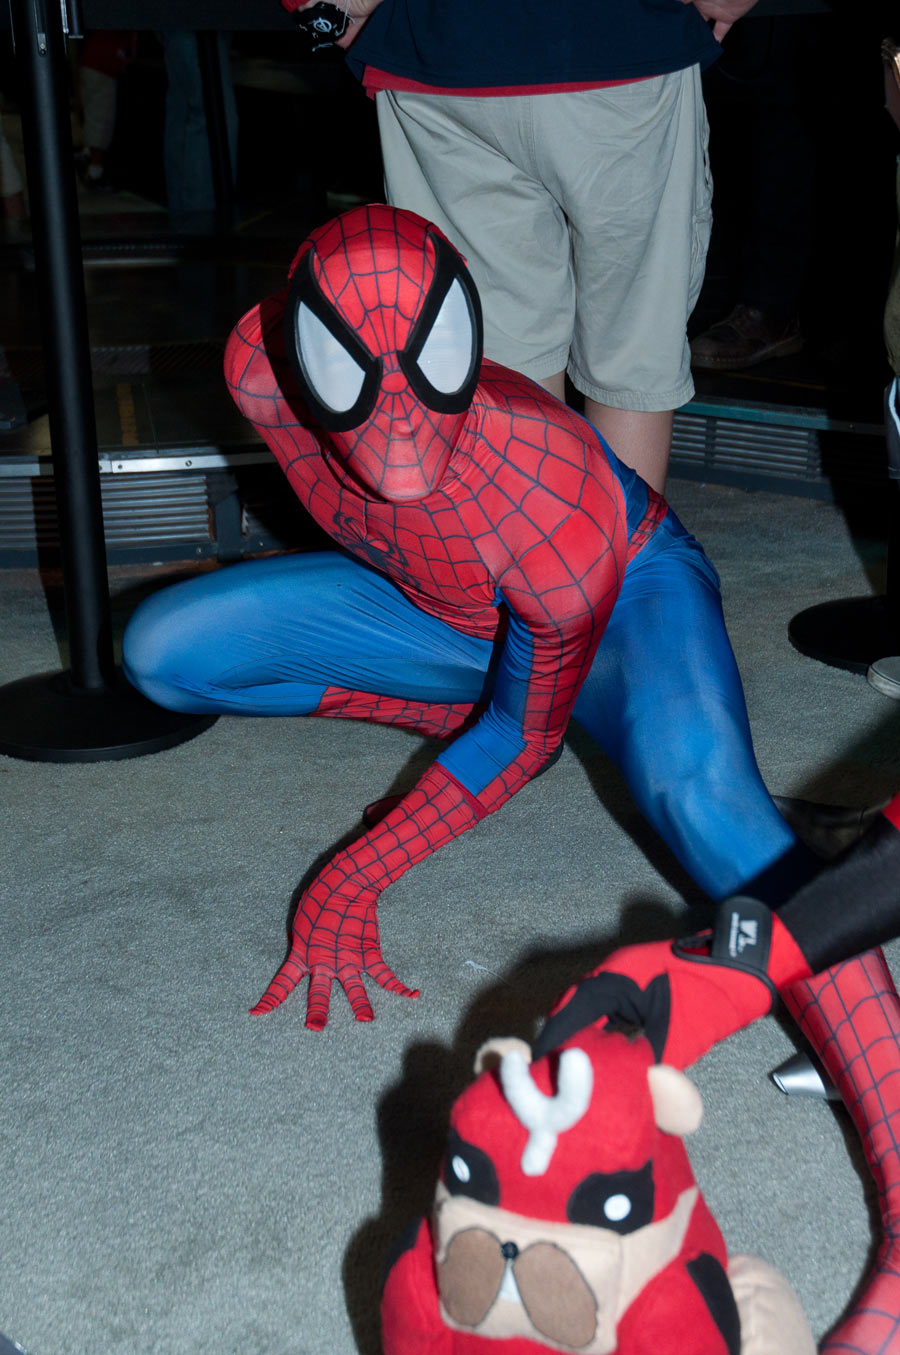 Spiderman costumes are not just for little boys - big boys can wear them too. Get a costume from Walmart and you are set. Any Green Goblins at the party ... : walmart spider man costume  - Germanpascual.Com